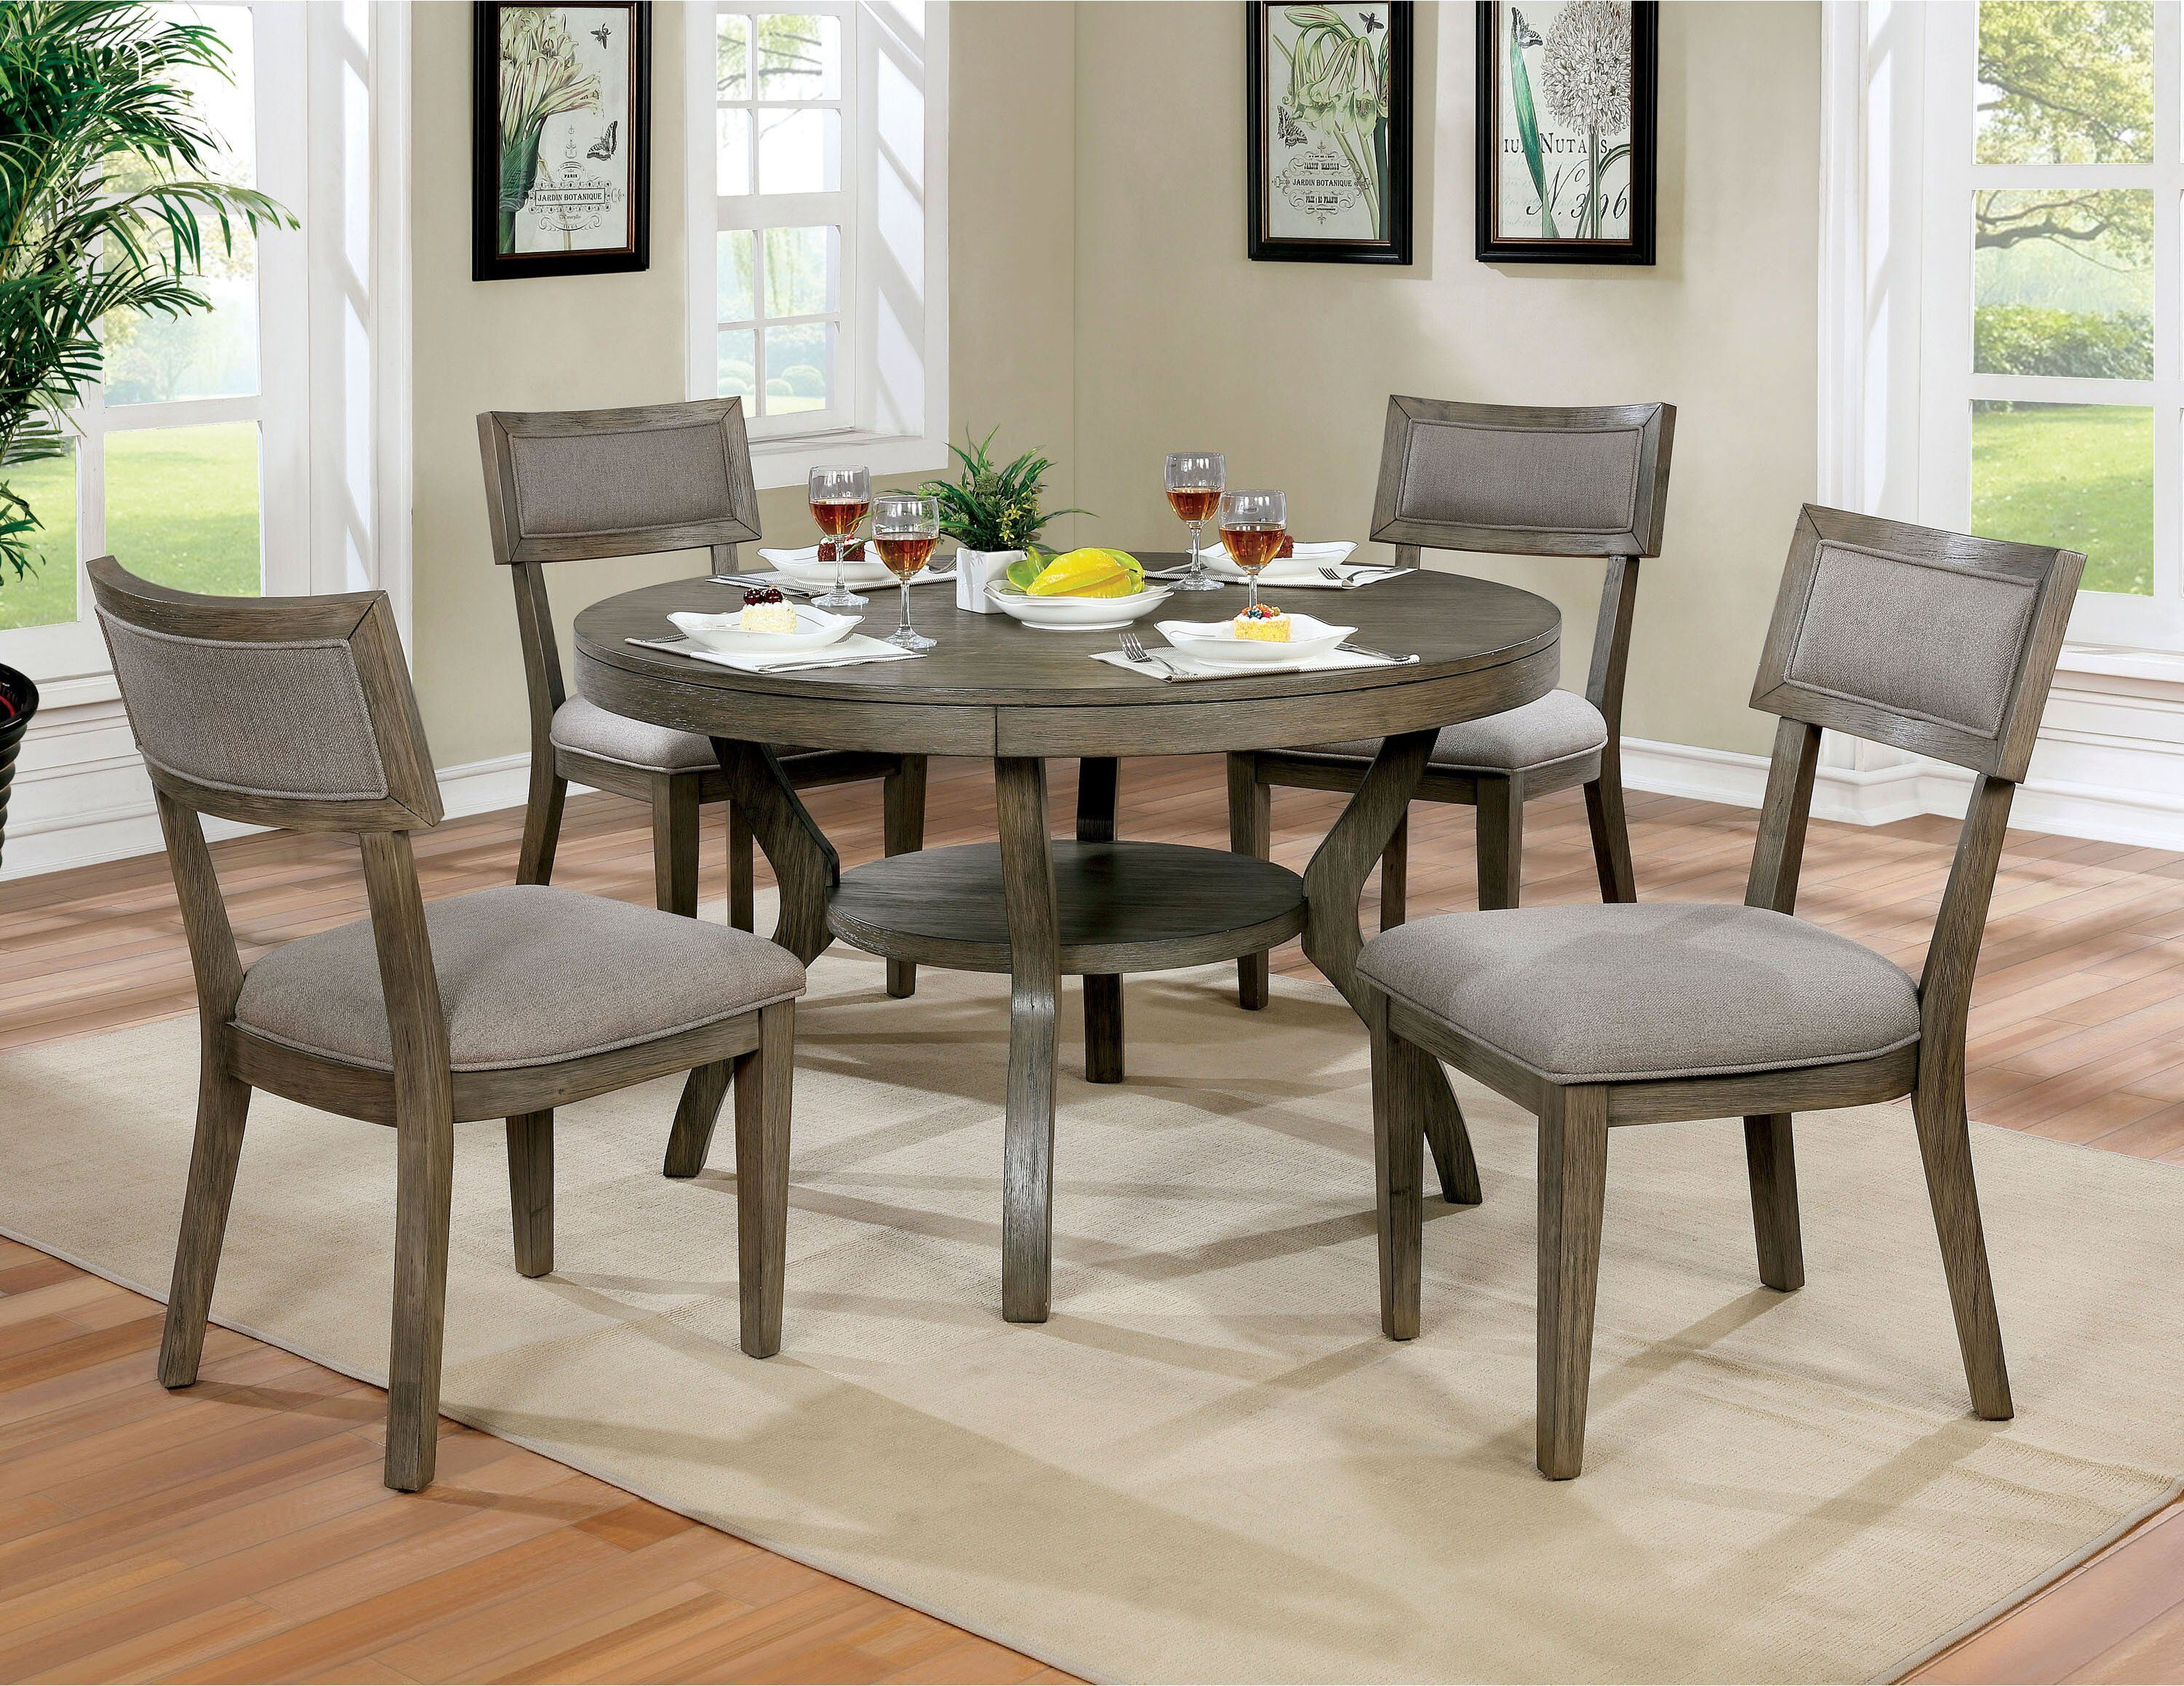 Brockman Dining Table In 2020 Grey Round Dining Table Round Dining Room Sets Round Dining Table Sets